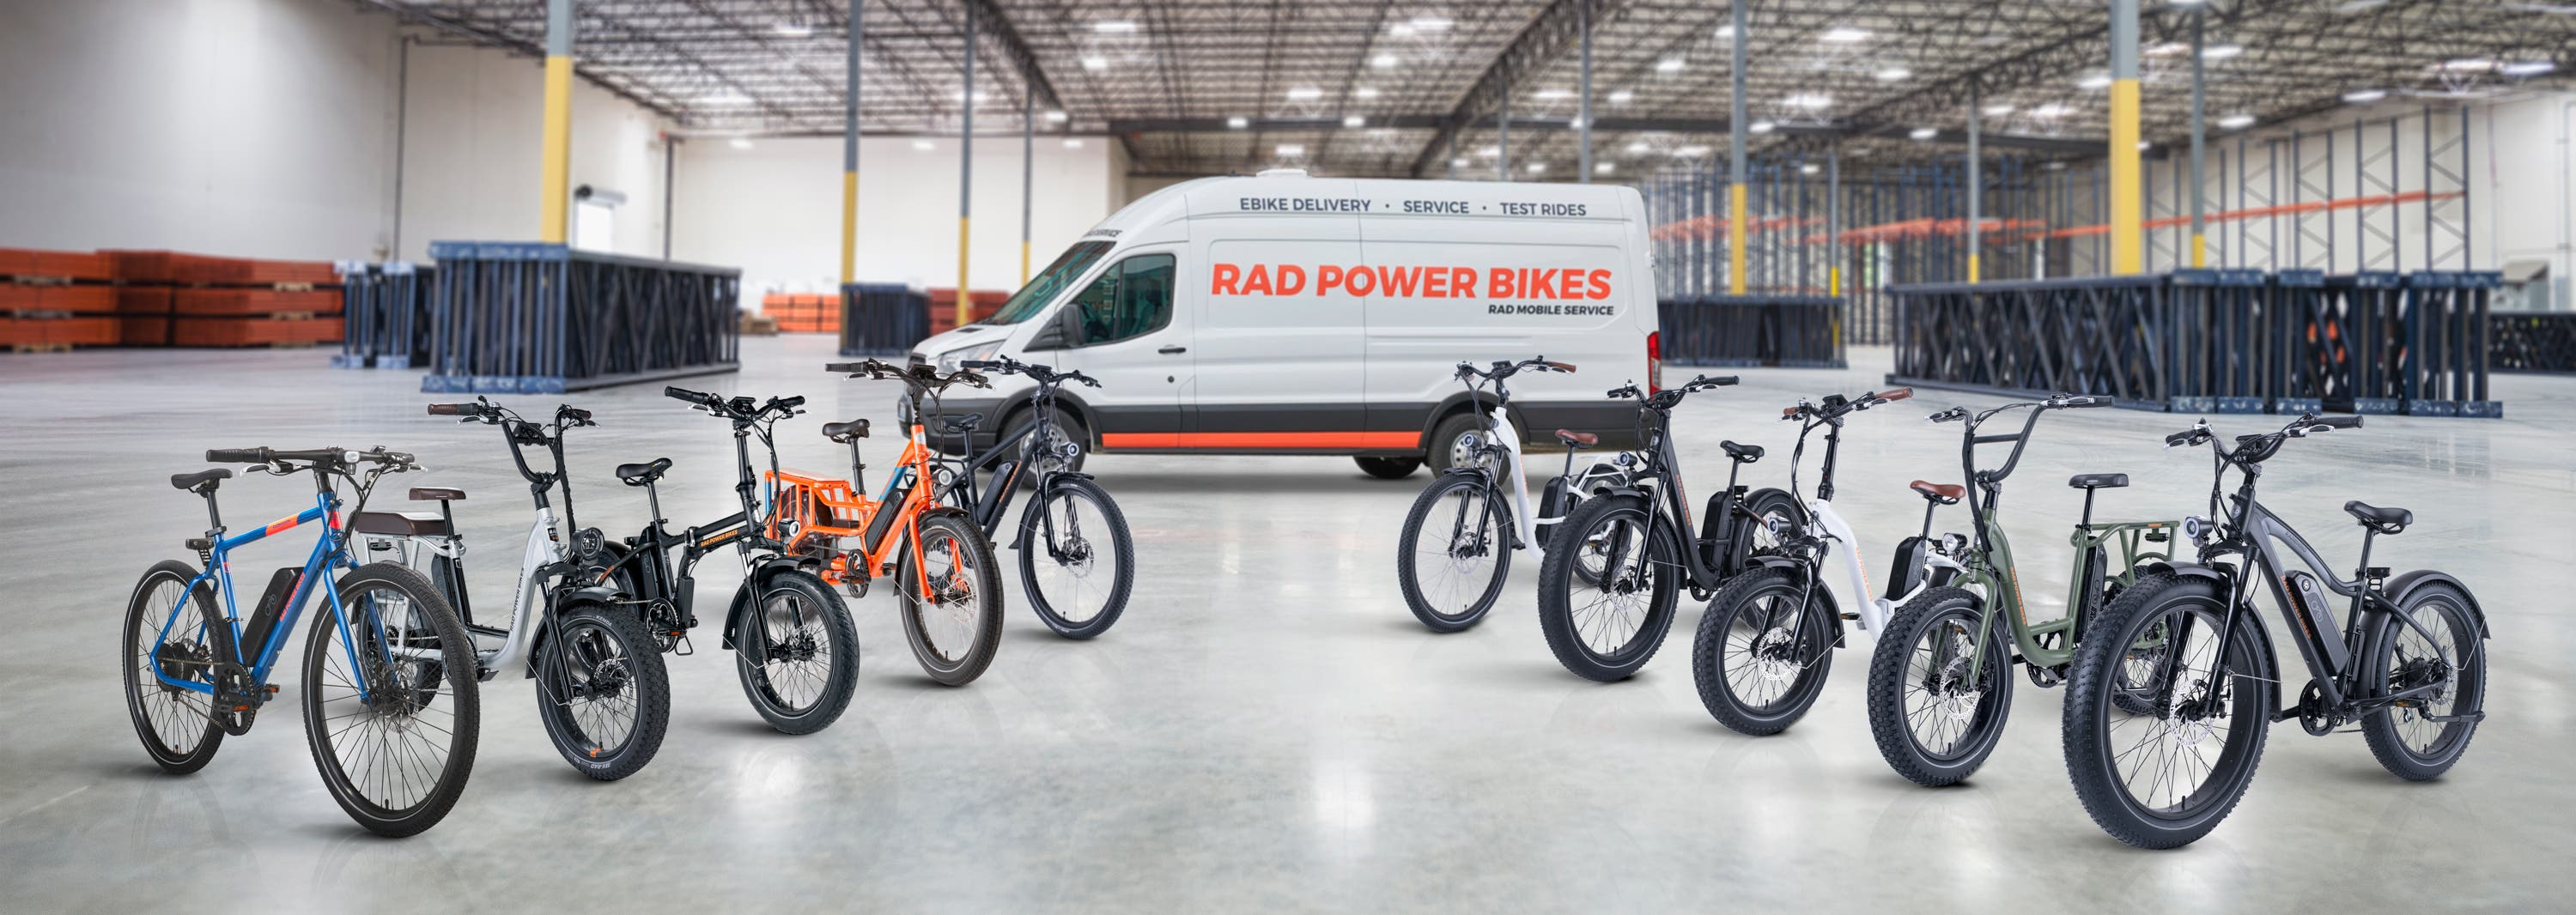 Rad Power Bikes lineup